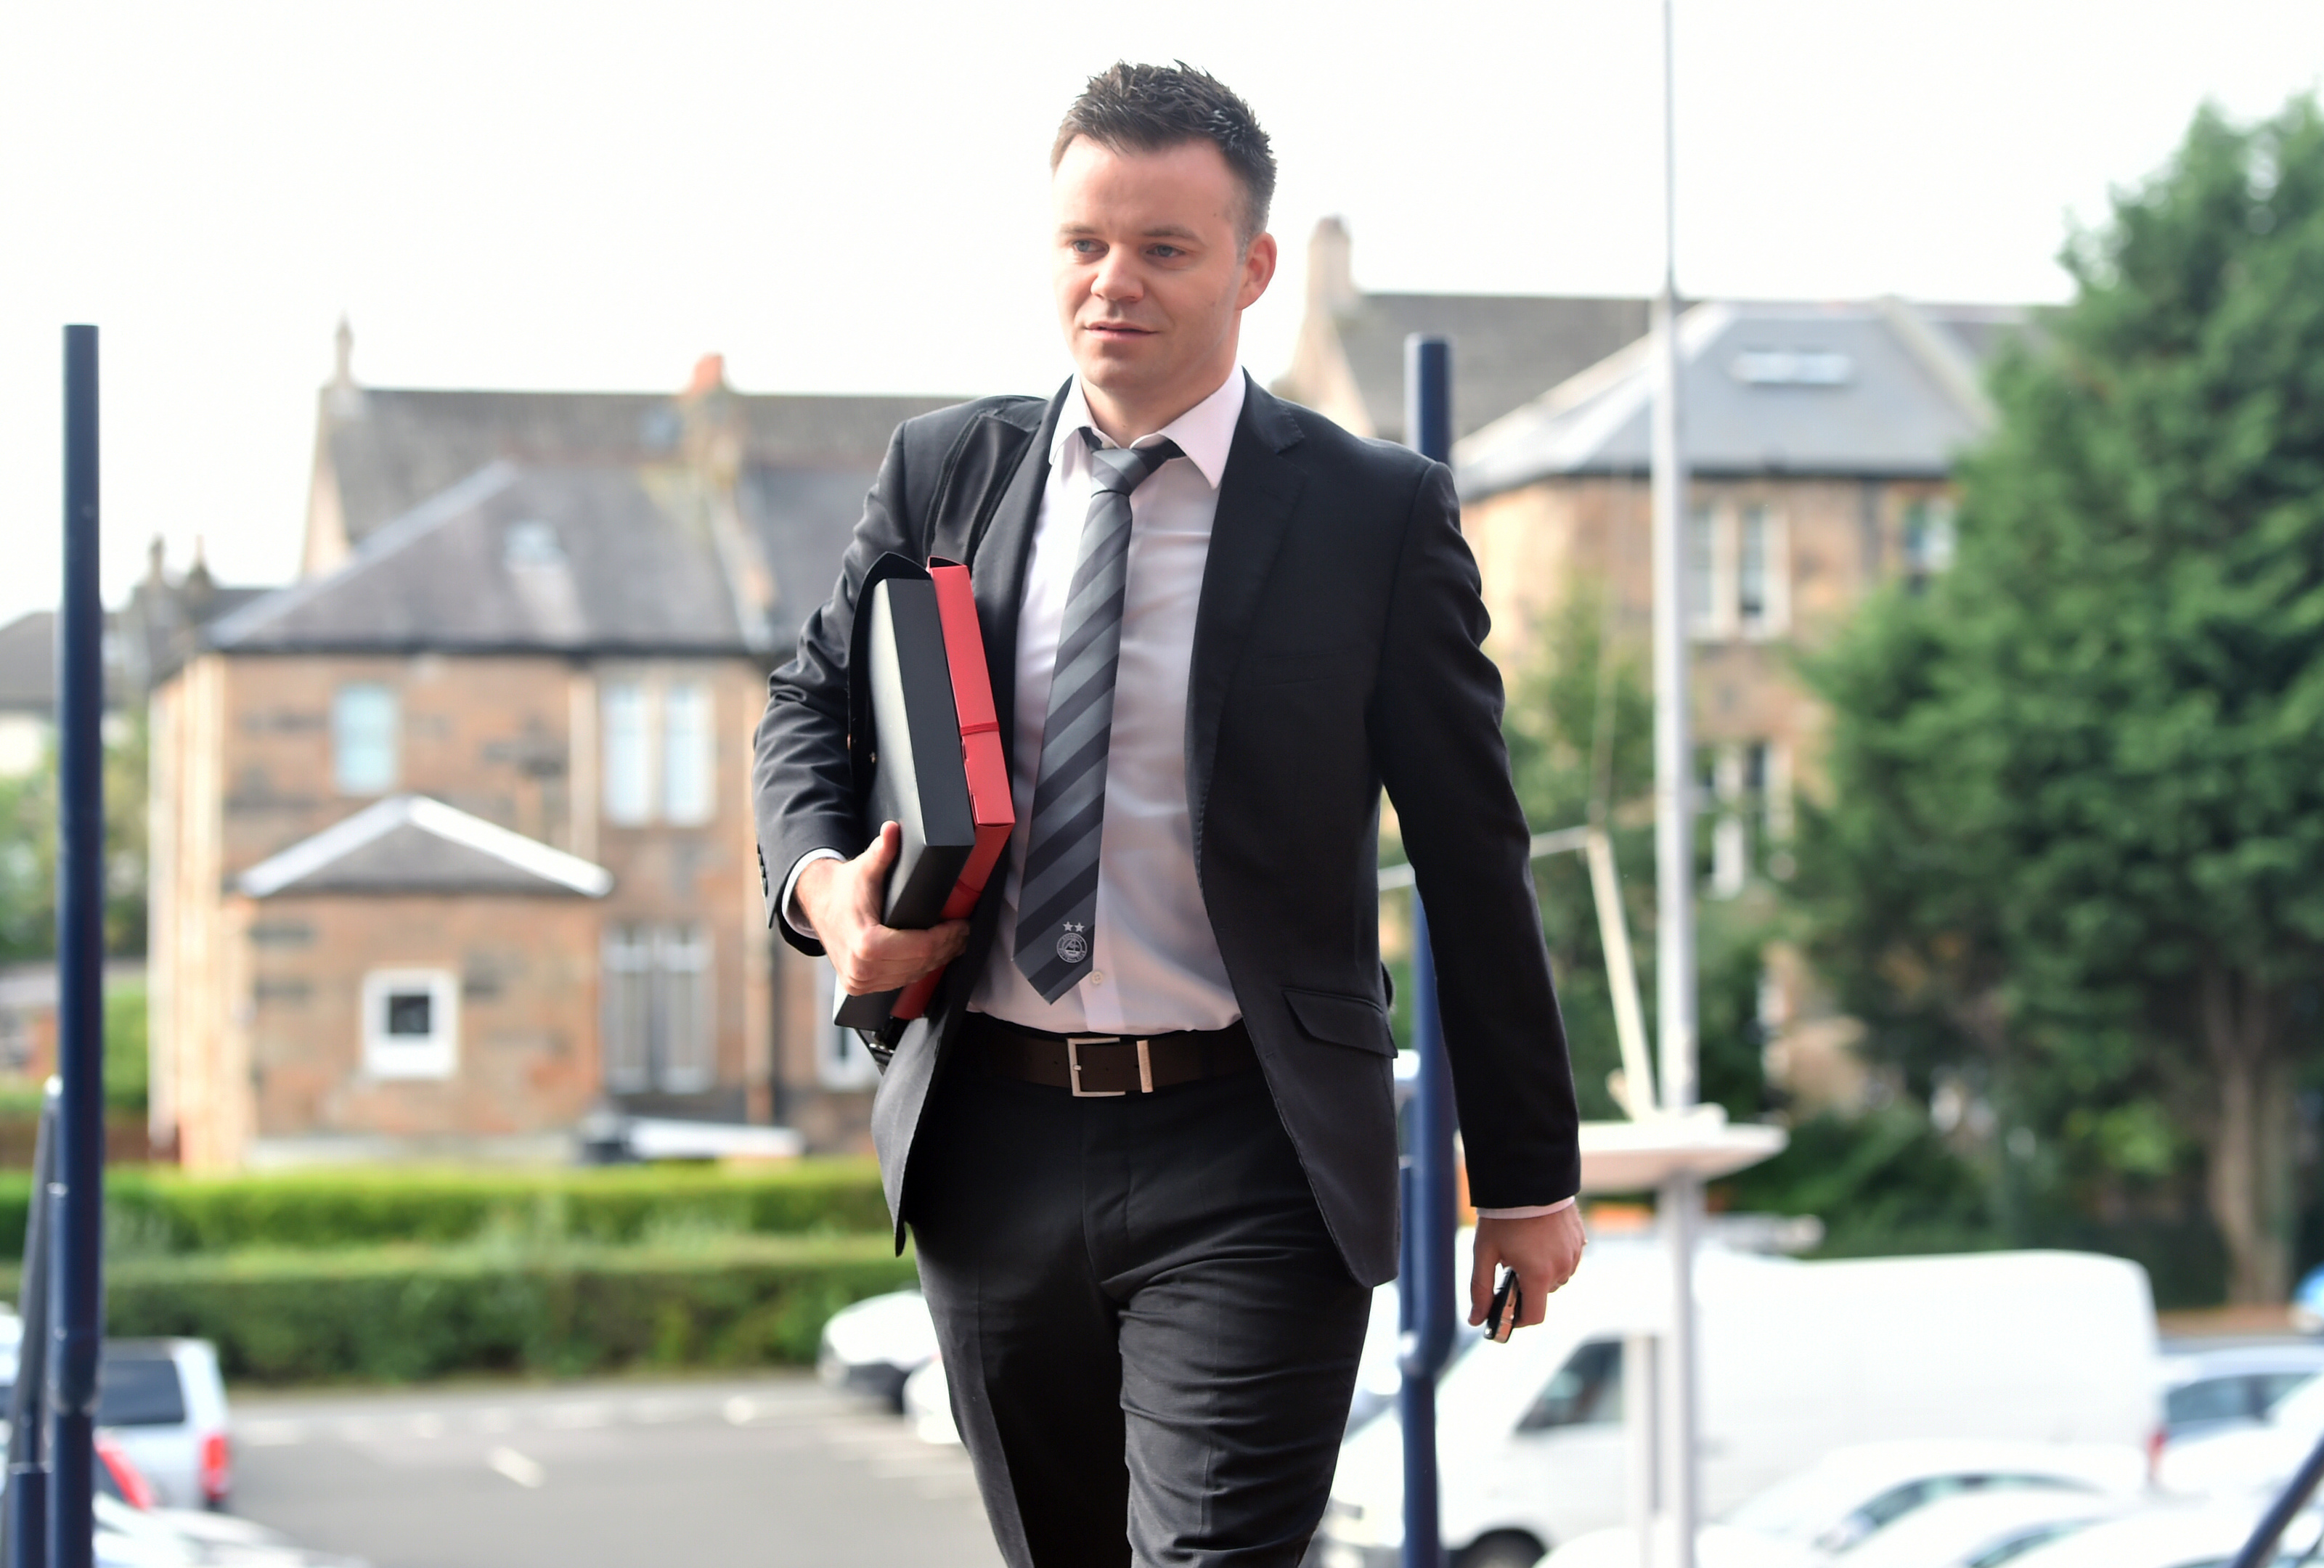 20/08/18   HAMPDEN PARK - GLASGOW   Steven Gunn, Director of Football Operations at Aberdeen, arrives at Hampden for the tribunal that will determine the fee Aberdeen have to pay Hamilton for striker Lewis Ferguson